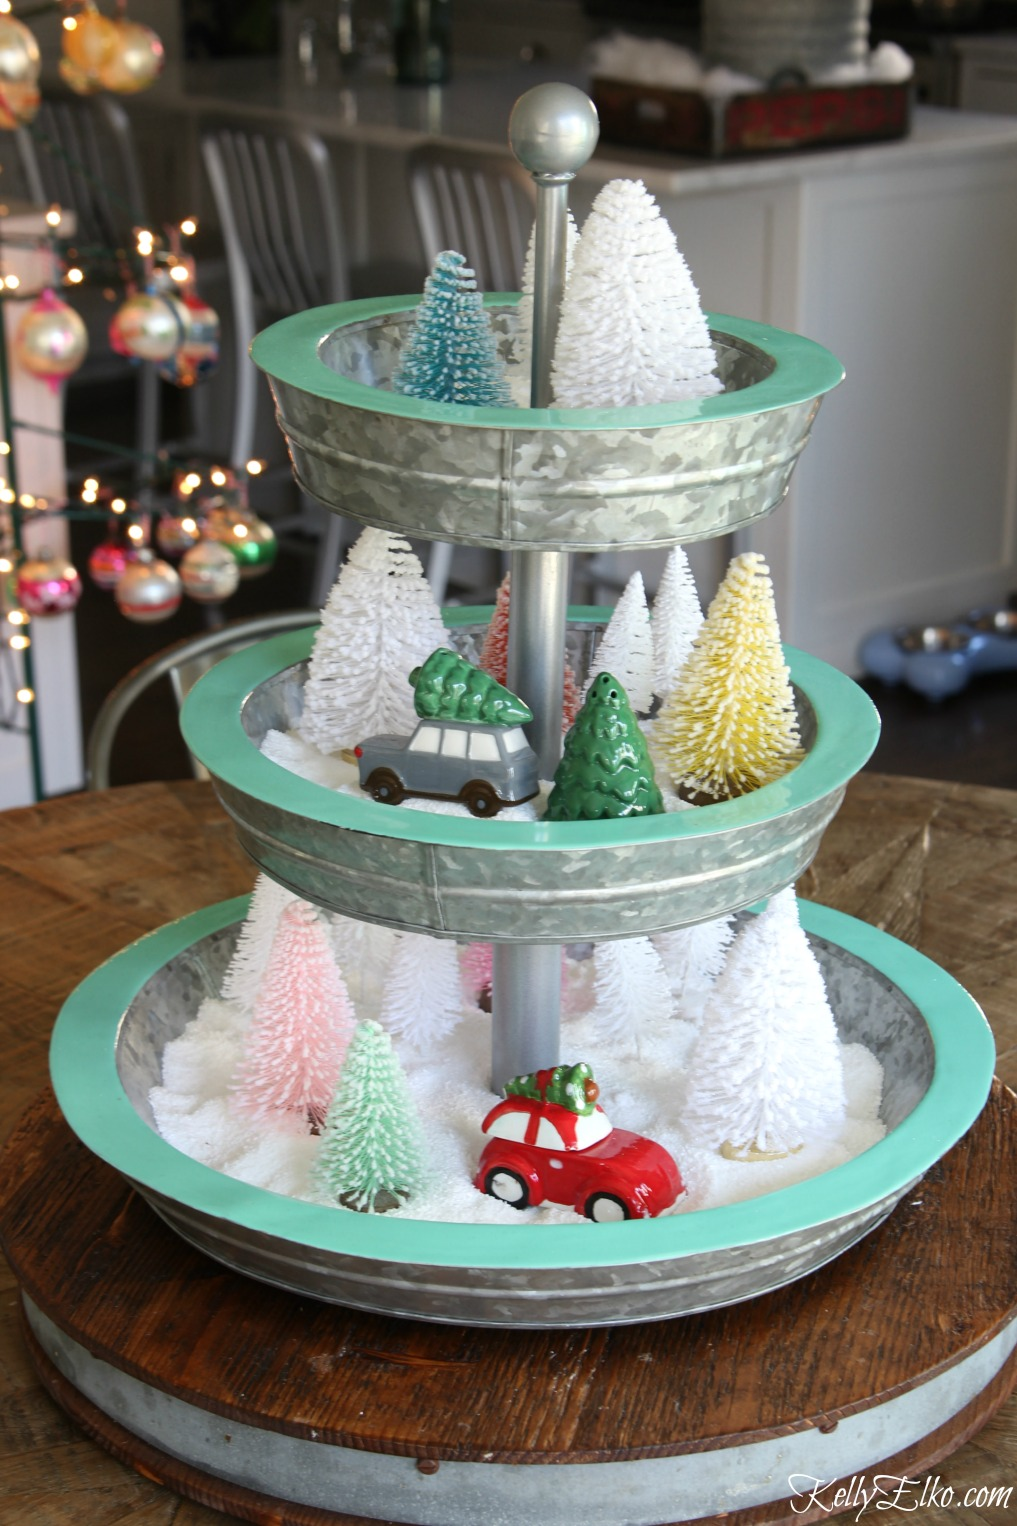 Creative Christmas Decorating Ideas - love this tiered tray filled with a winter village of bottle brush trees kellyelko.com